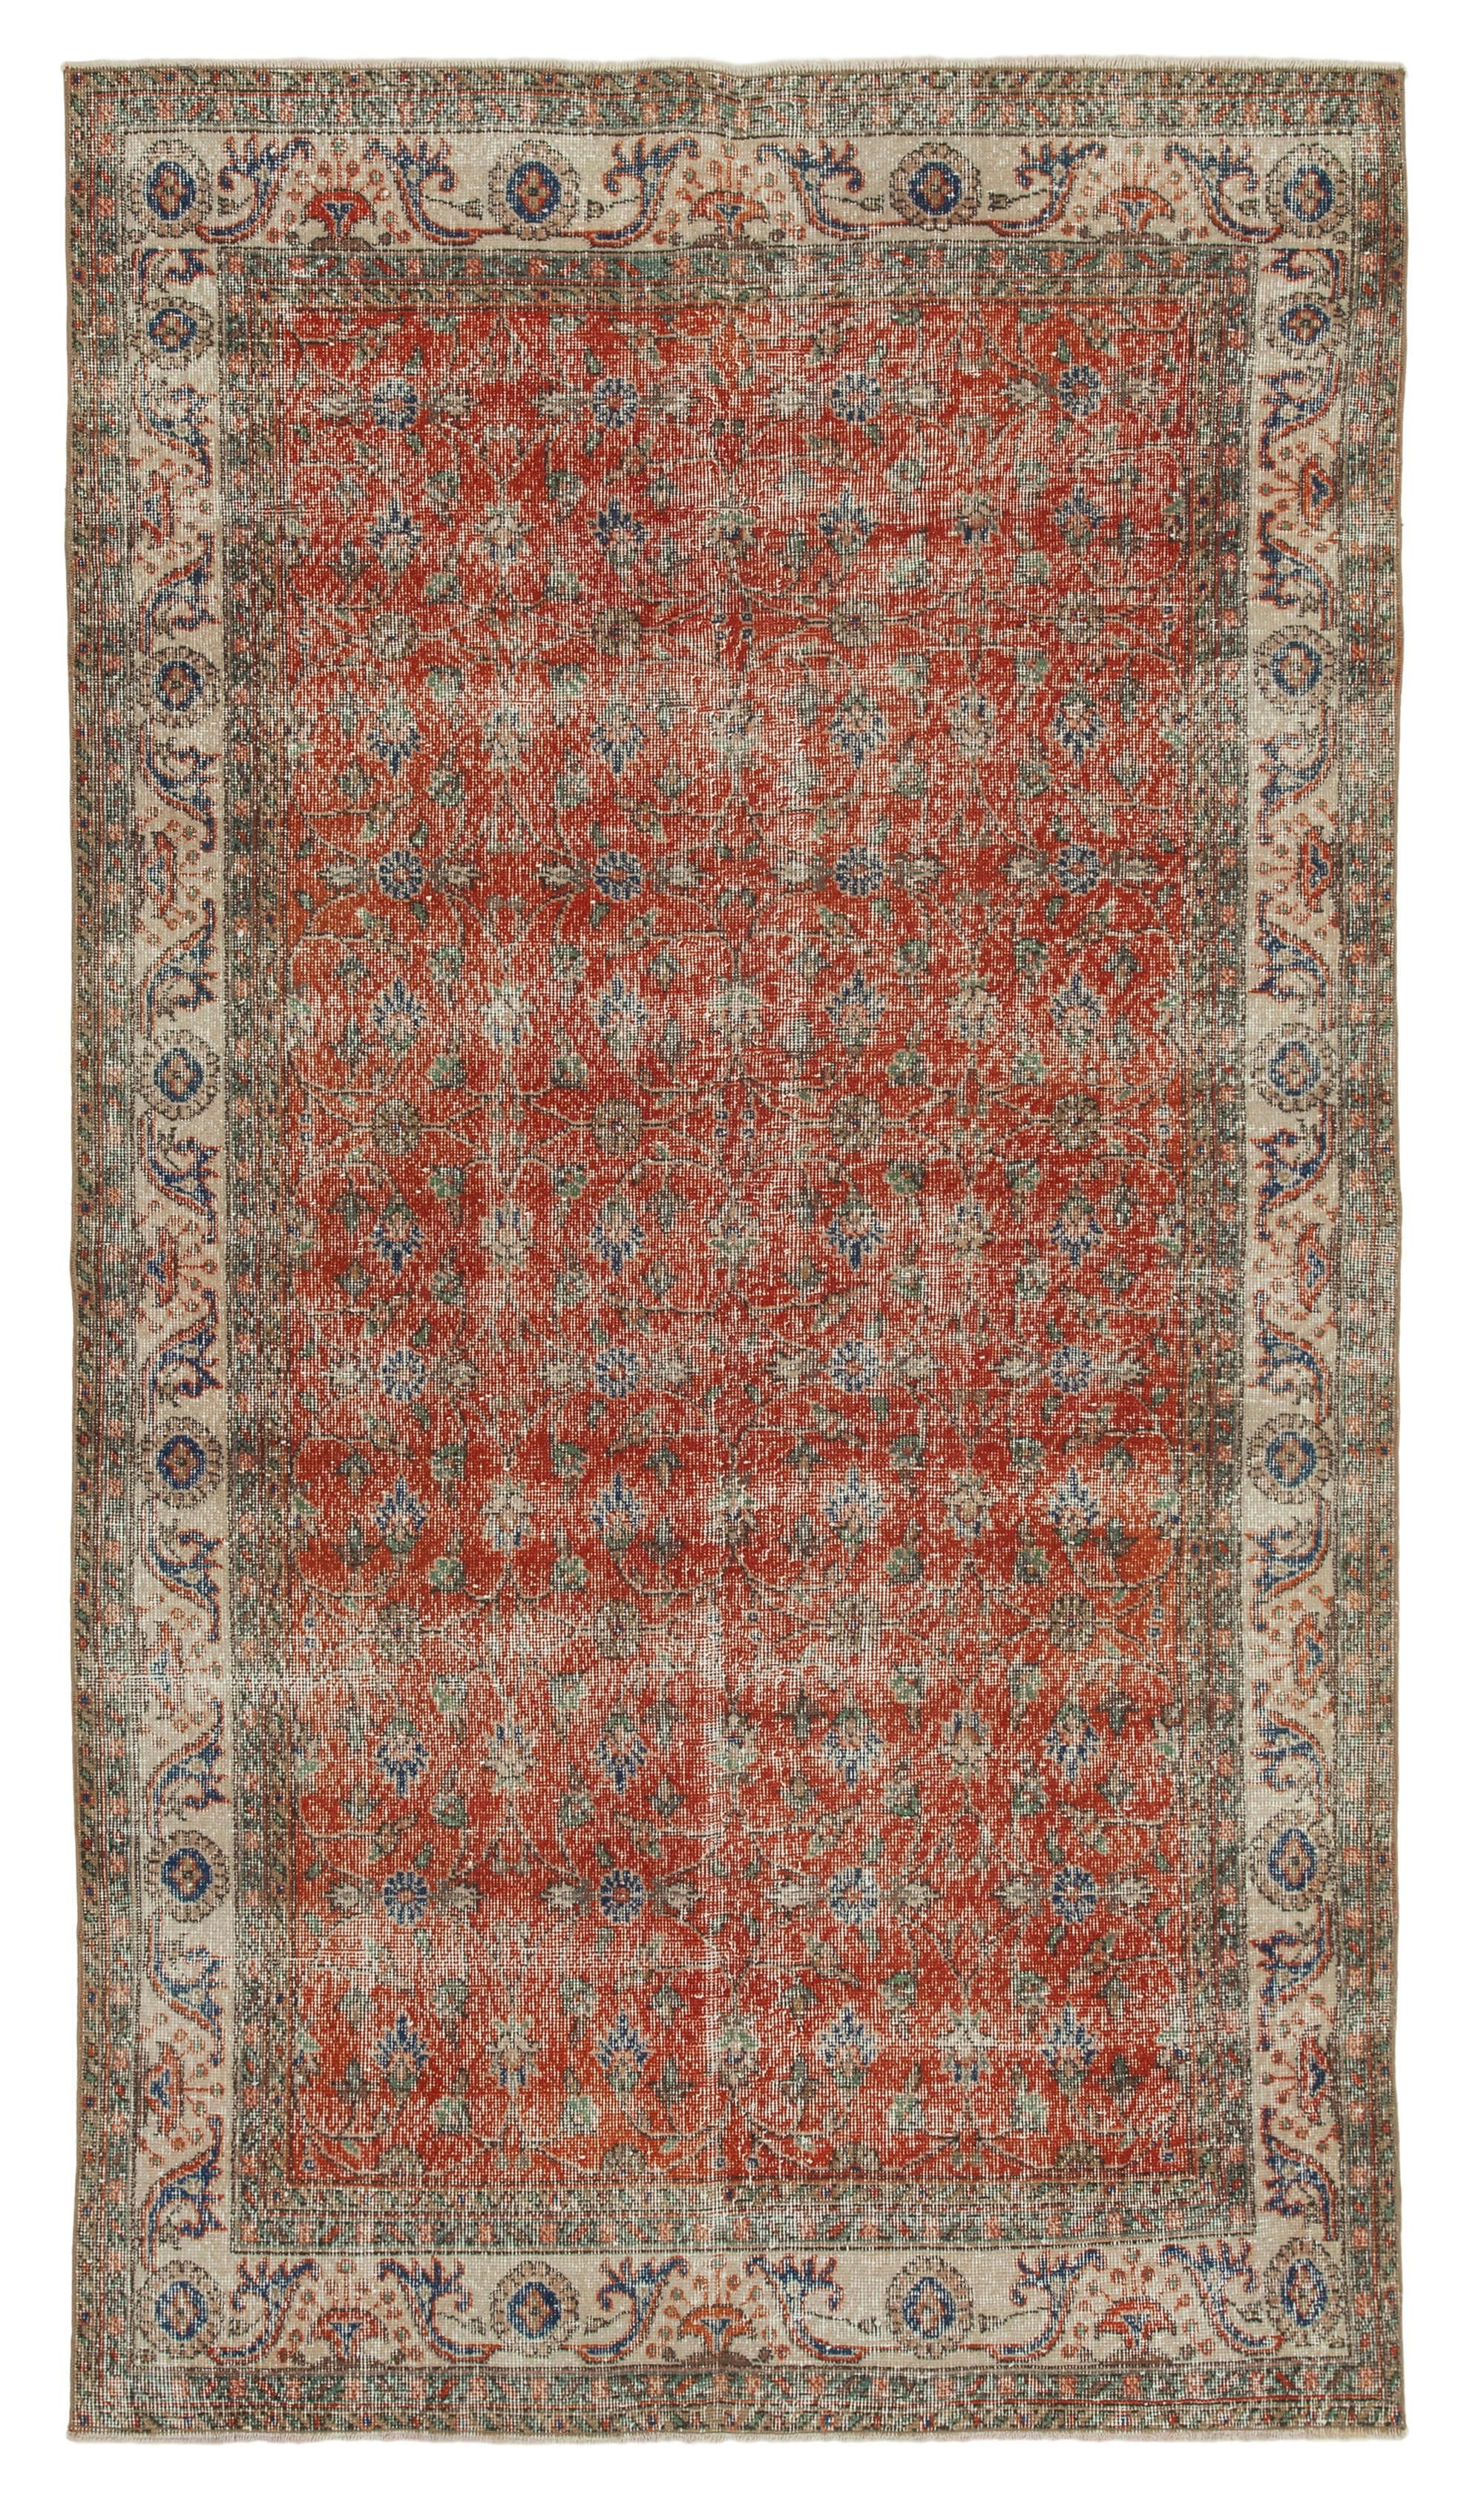 Vintage carpets are produced of 30 - 70 years old and traditional hand knotted Turkish carpets. They are wool on cotton carpets. Each one them carefully selected, cleaned and washed. The original patterns are kept. #rugs #carpets #arearugs #vintagerugs #rugncarpet #turkishrugs #eclectic #bohemian #distressedrug #handmade #rugsideas #faded #handknotted #diningroom #oriental #homedecor #orientalrugs #design #decorationideas #bohemianrugs